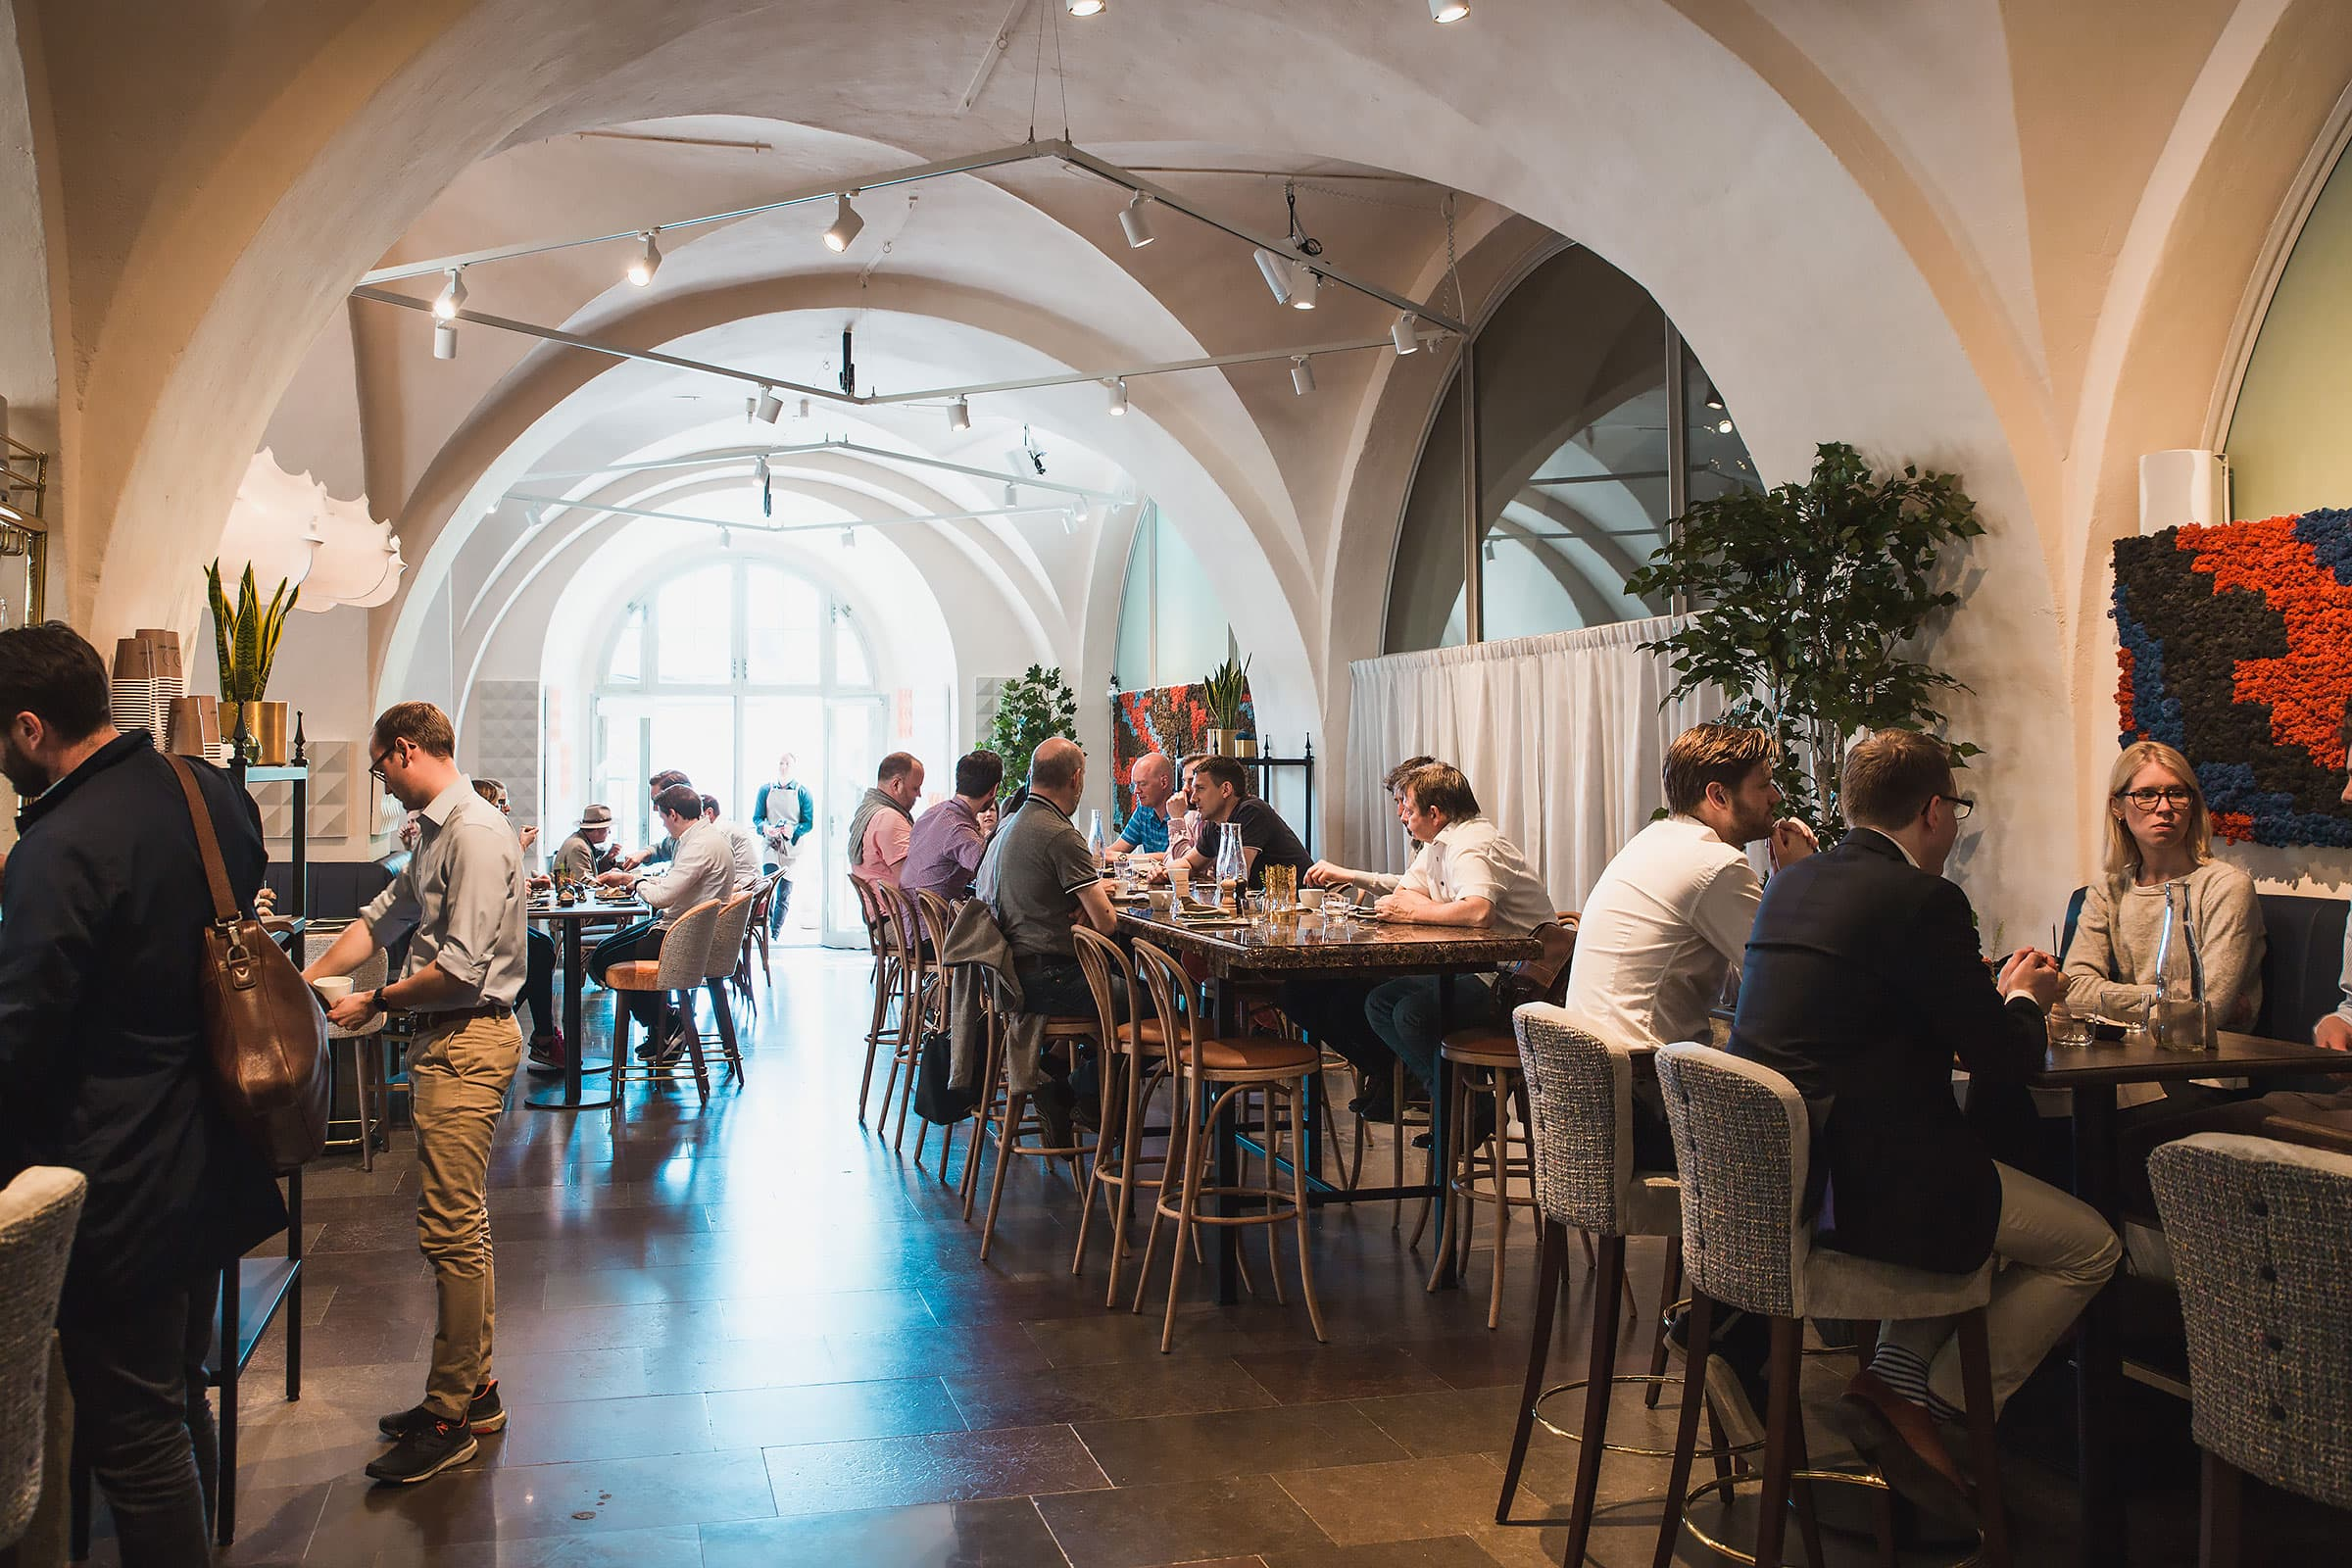 The best lunch restaurants in Östermalm